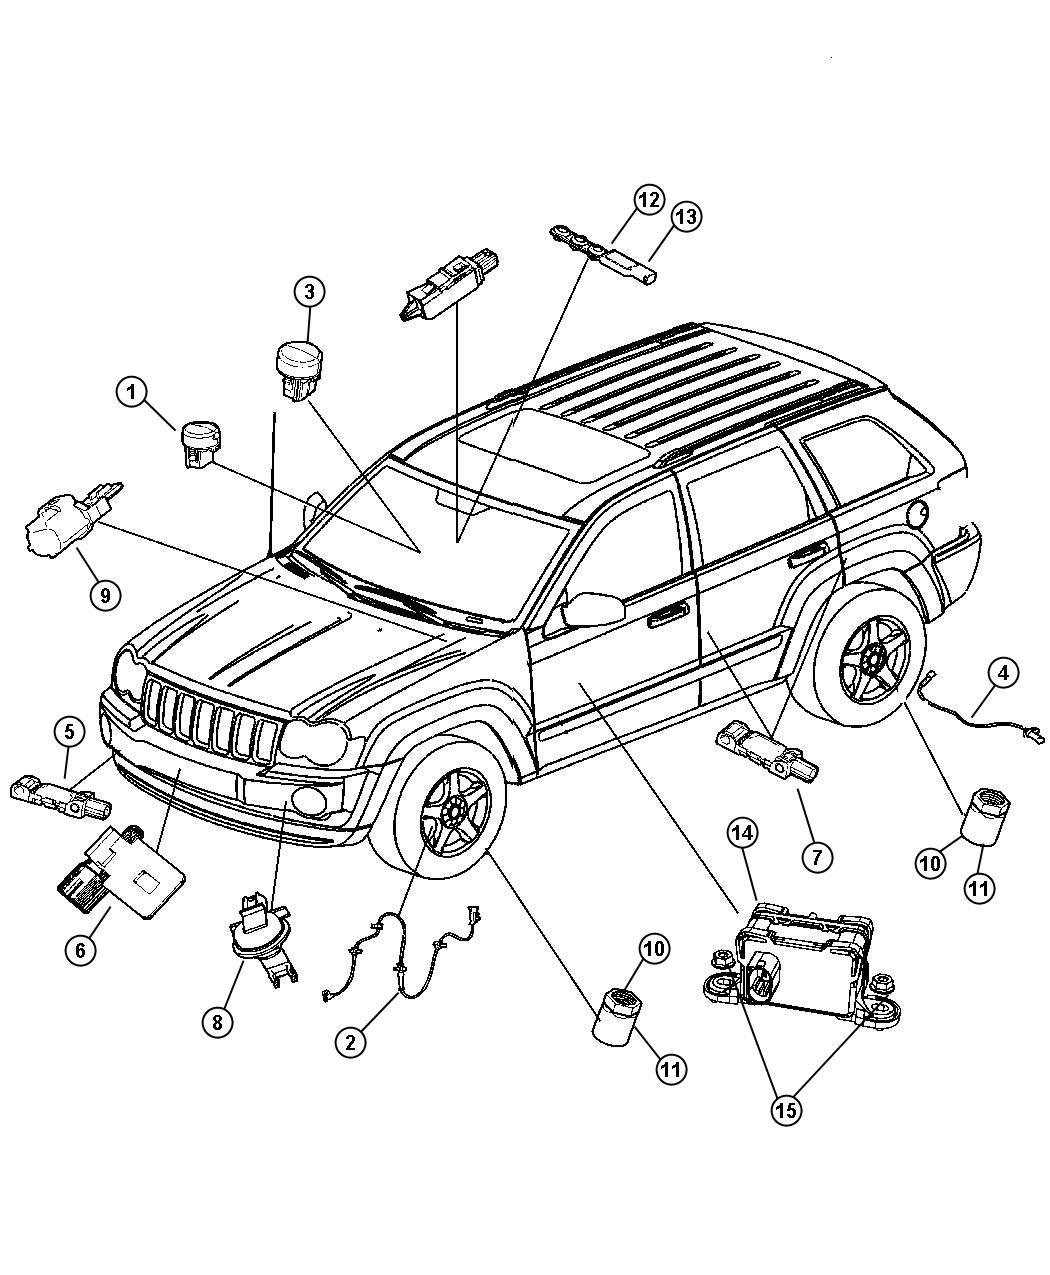 Jeep Grand Cherokee Sensor. Impact, side airbag impact